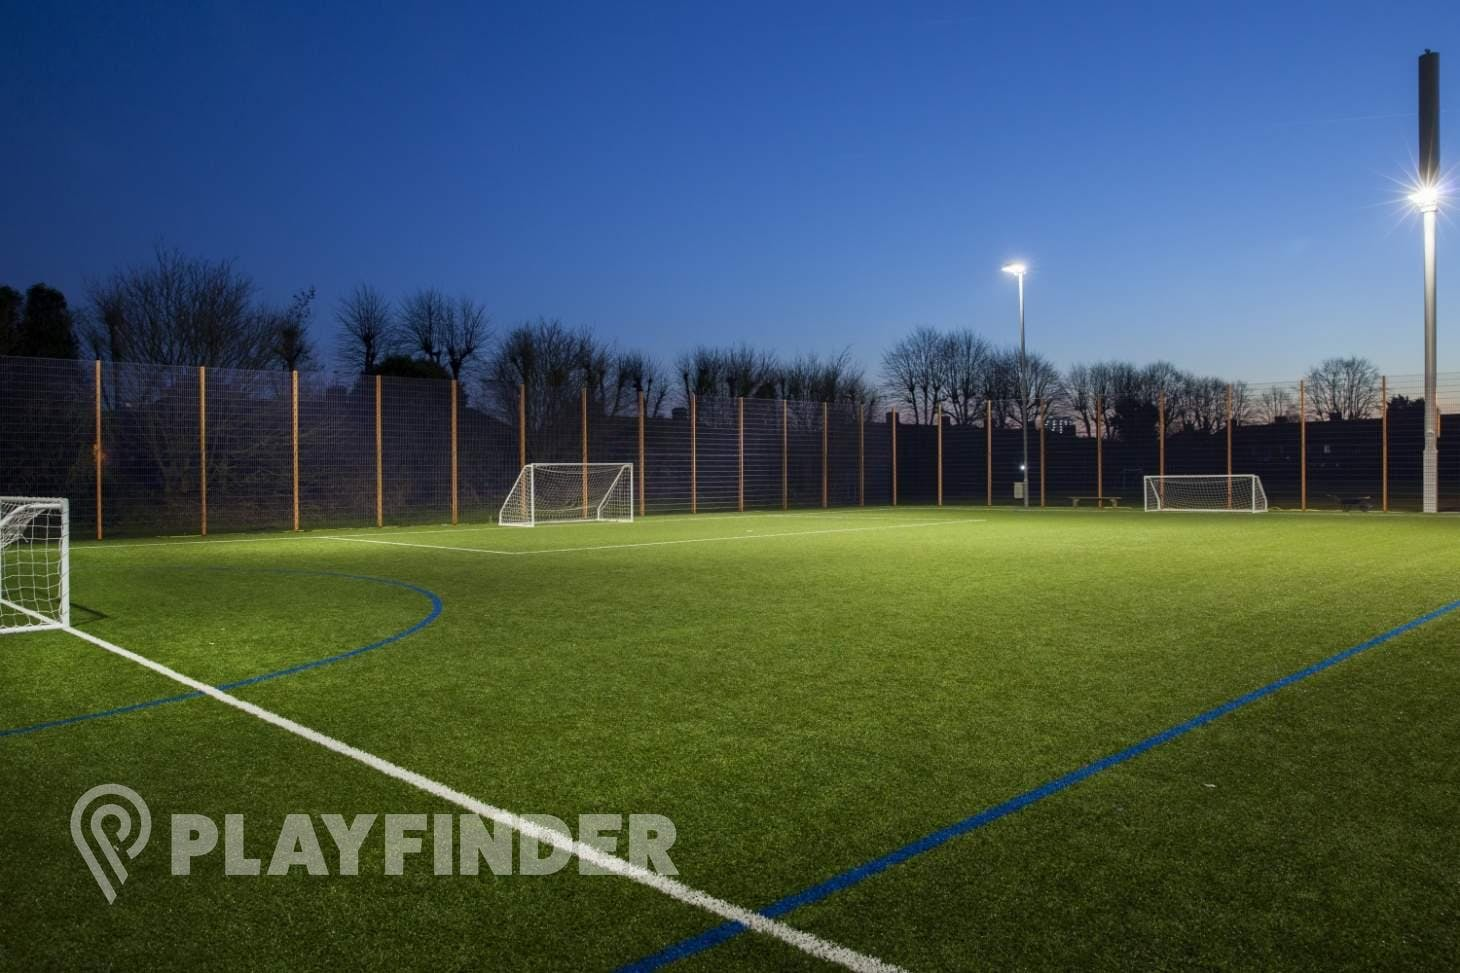 Burnt Oak Leisure Centre 5 a side | 3G Astroturf football pitch